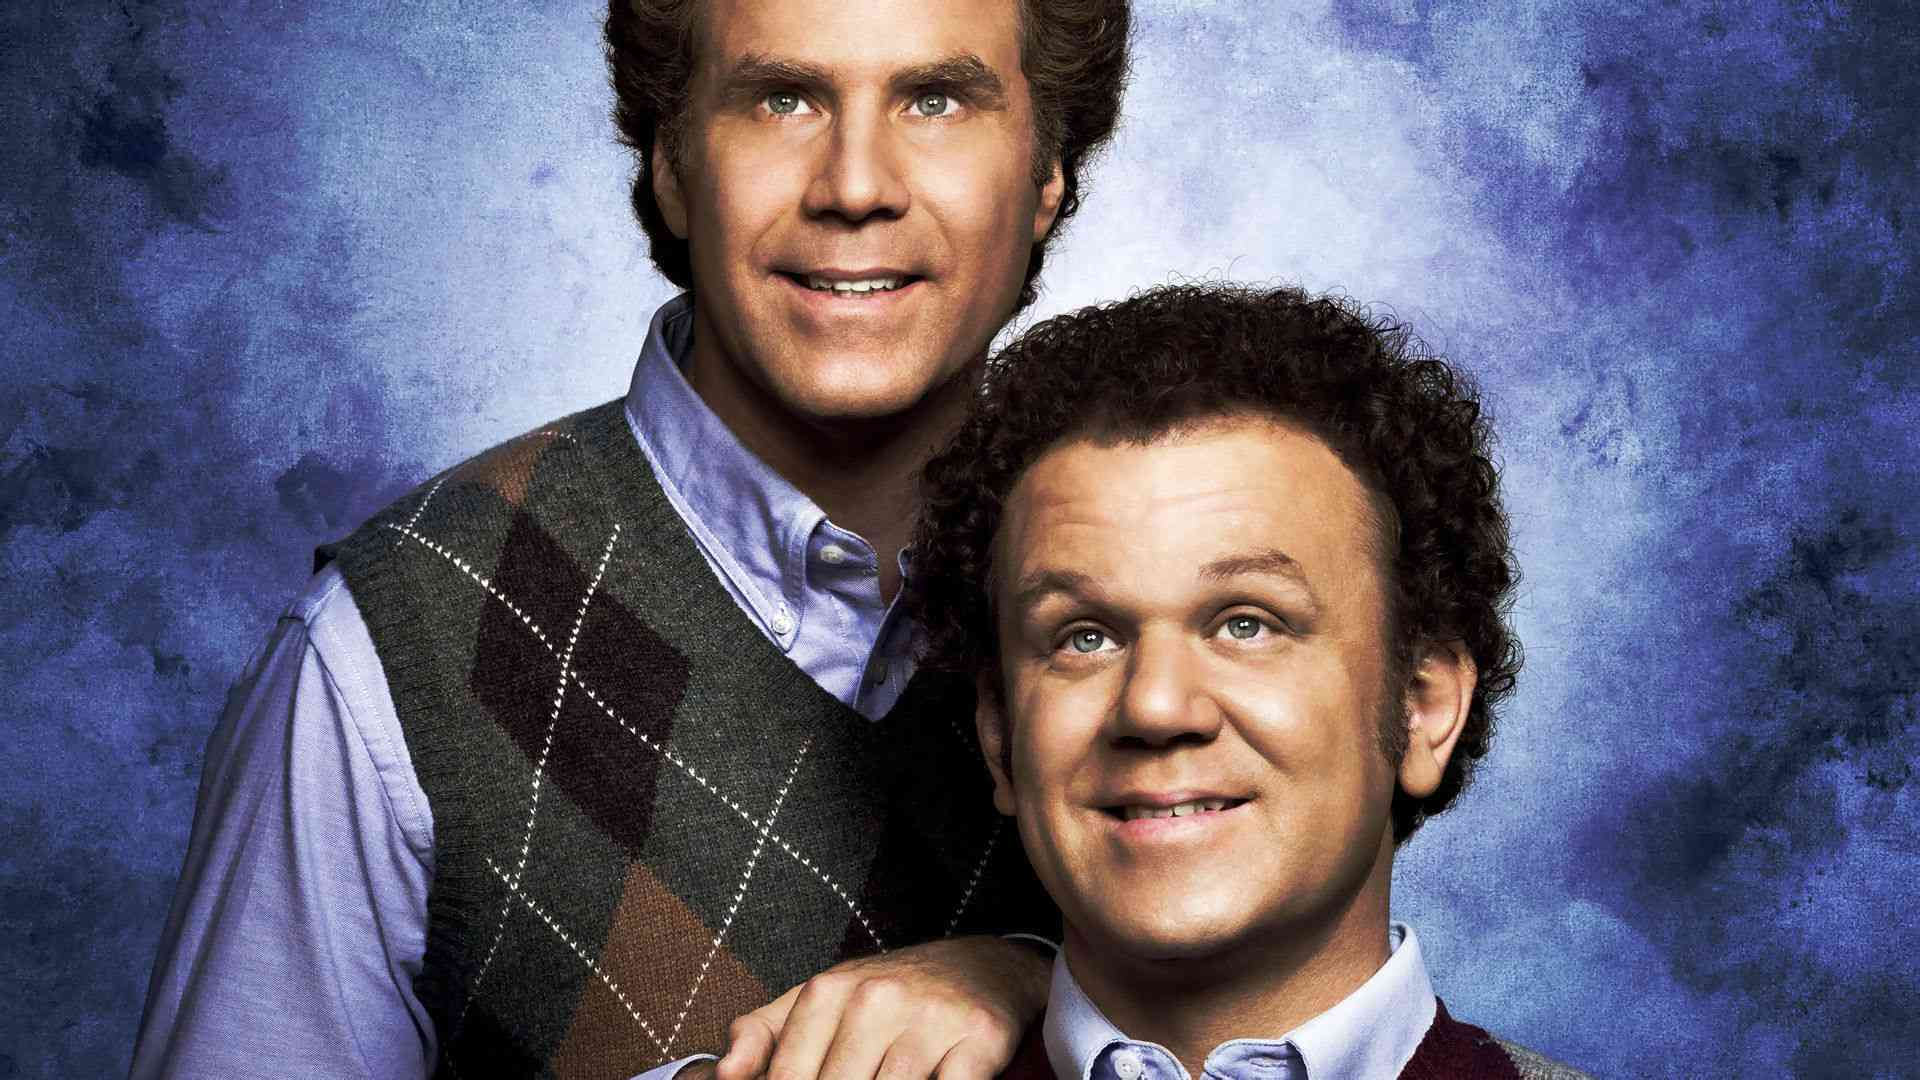 Will Ferrell in Step Brothers